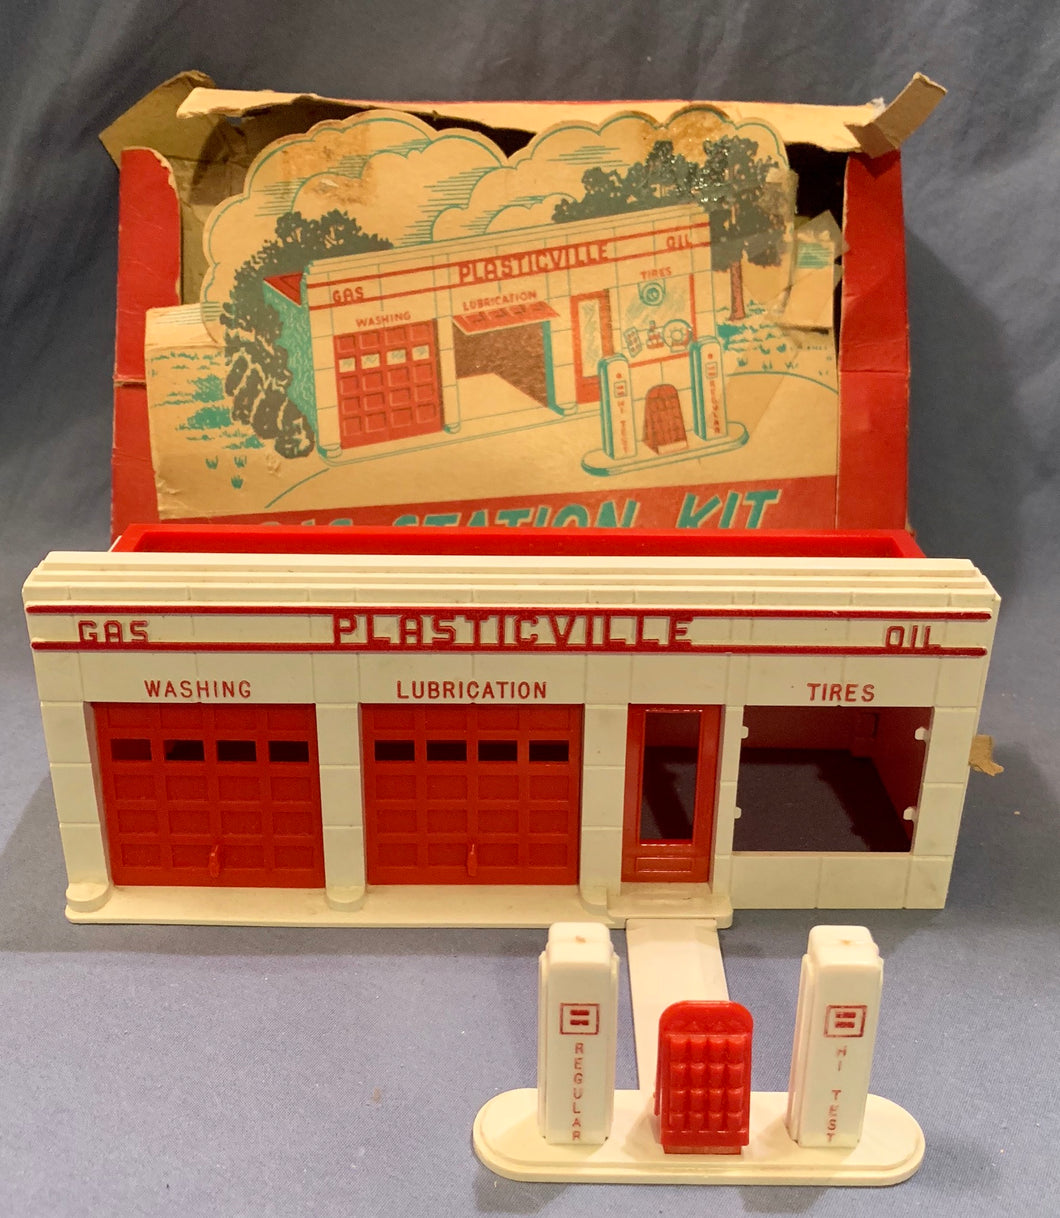 Plasticville Gas Station Kit Miniature from